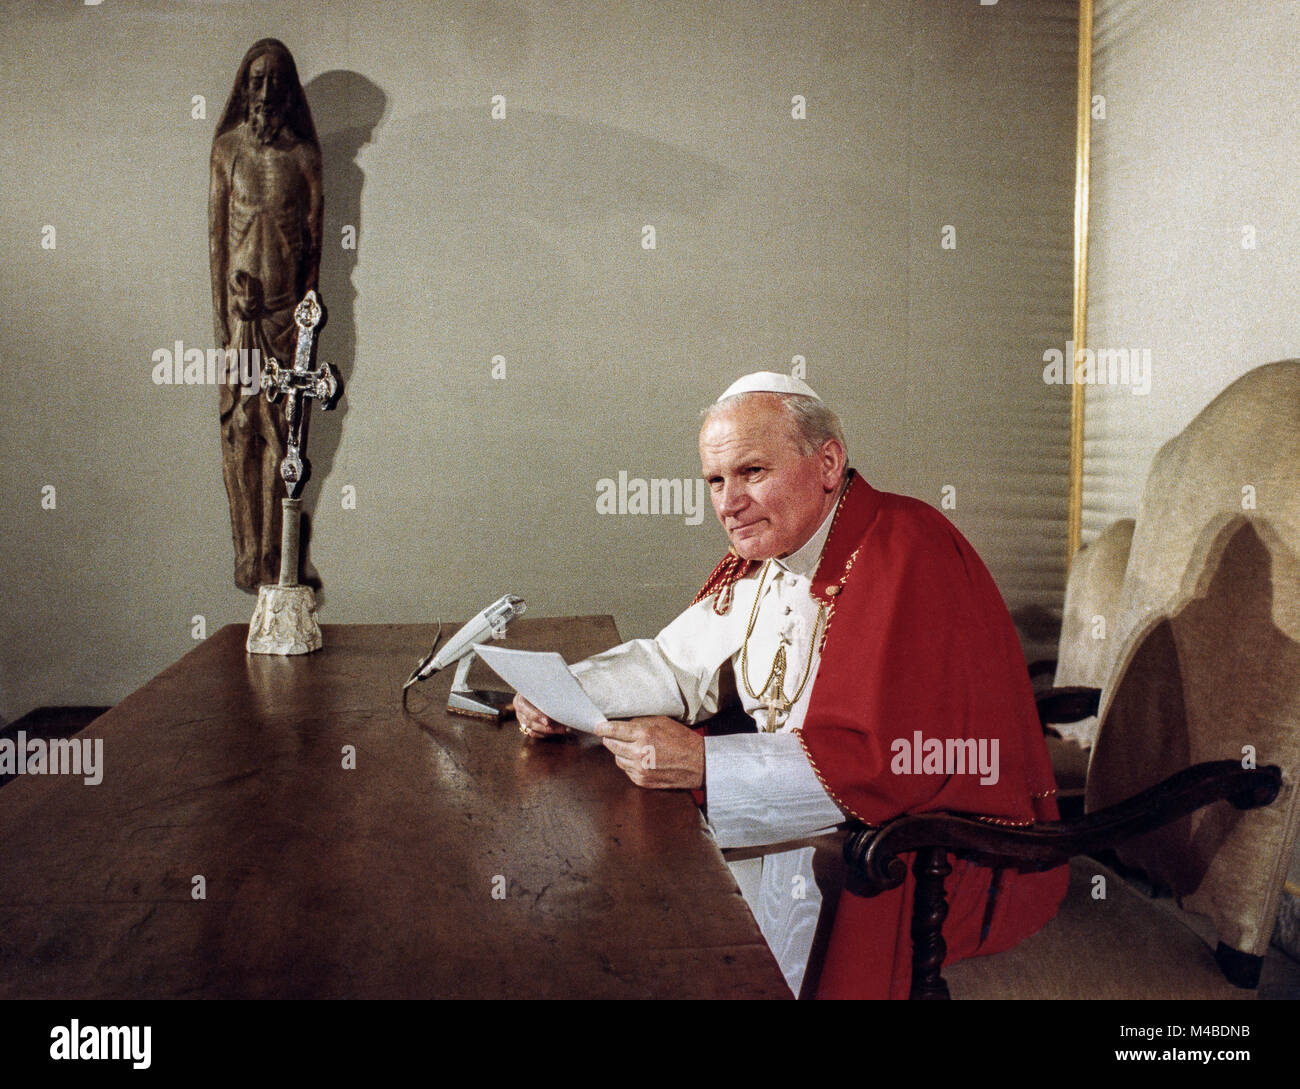 June 10, 1979 Speech by Pope John Paul II to mass media professionals in Krakow during their trip to Poland. Stock Photo